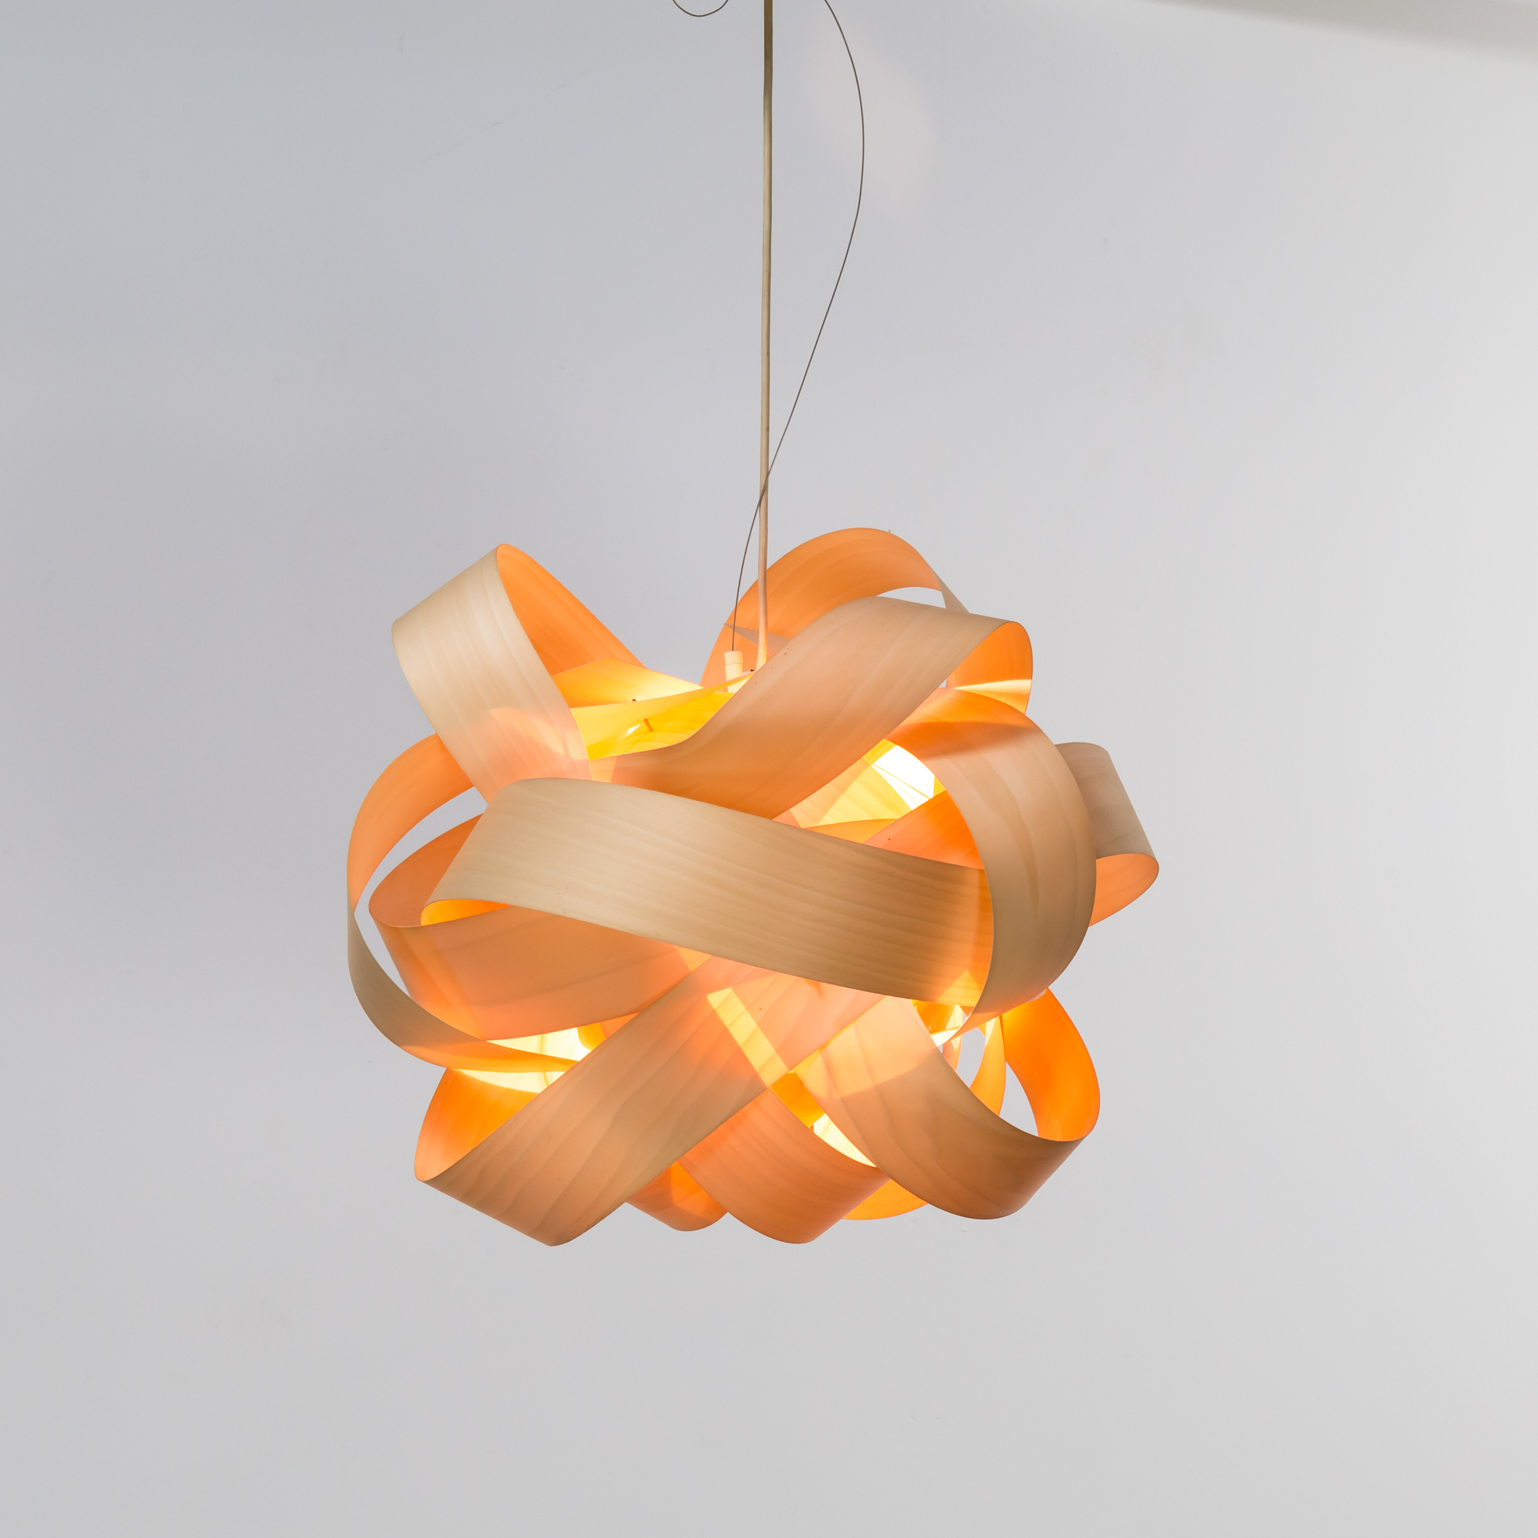 san store furniture product clear los chandelier category cut county in angeles diego orange crystal cl luxury light hand ob